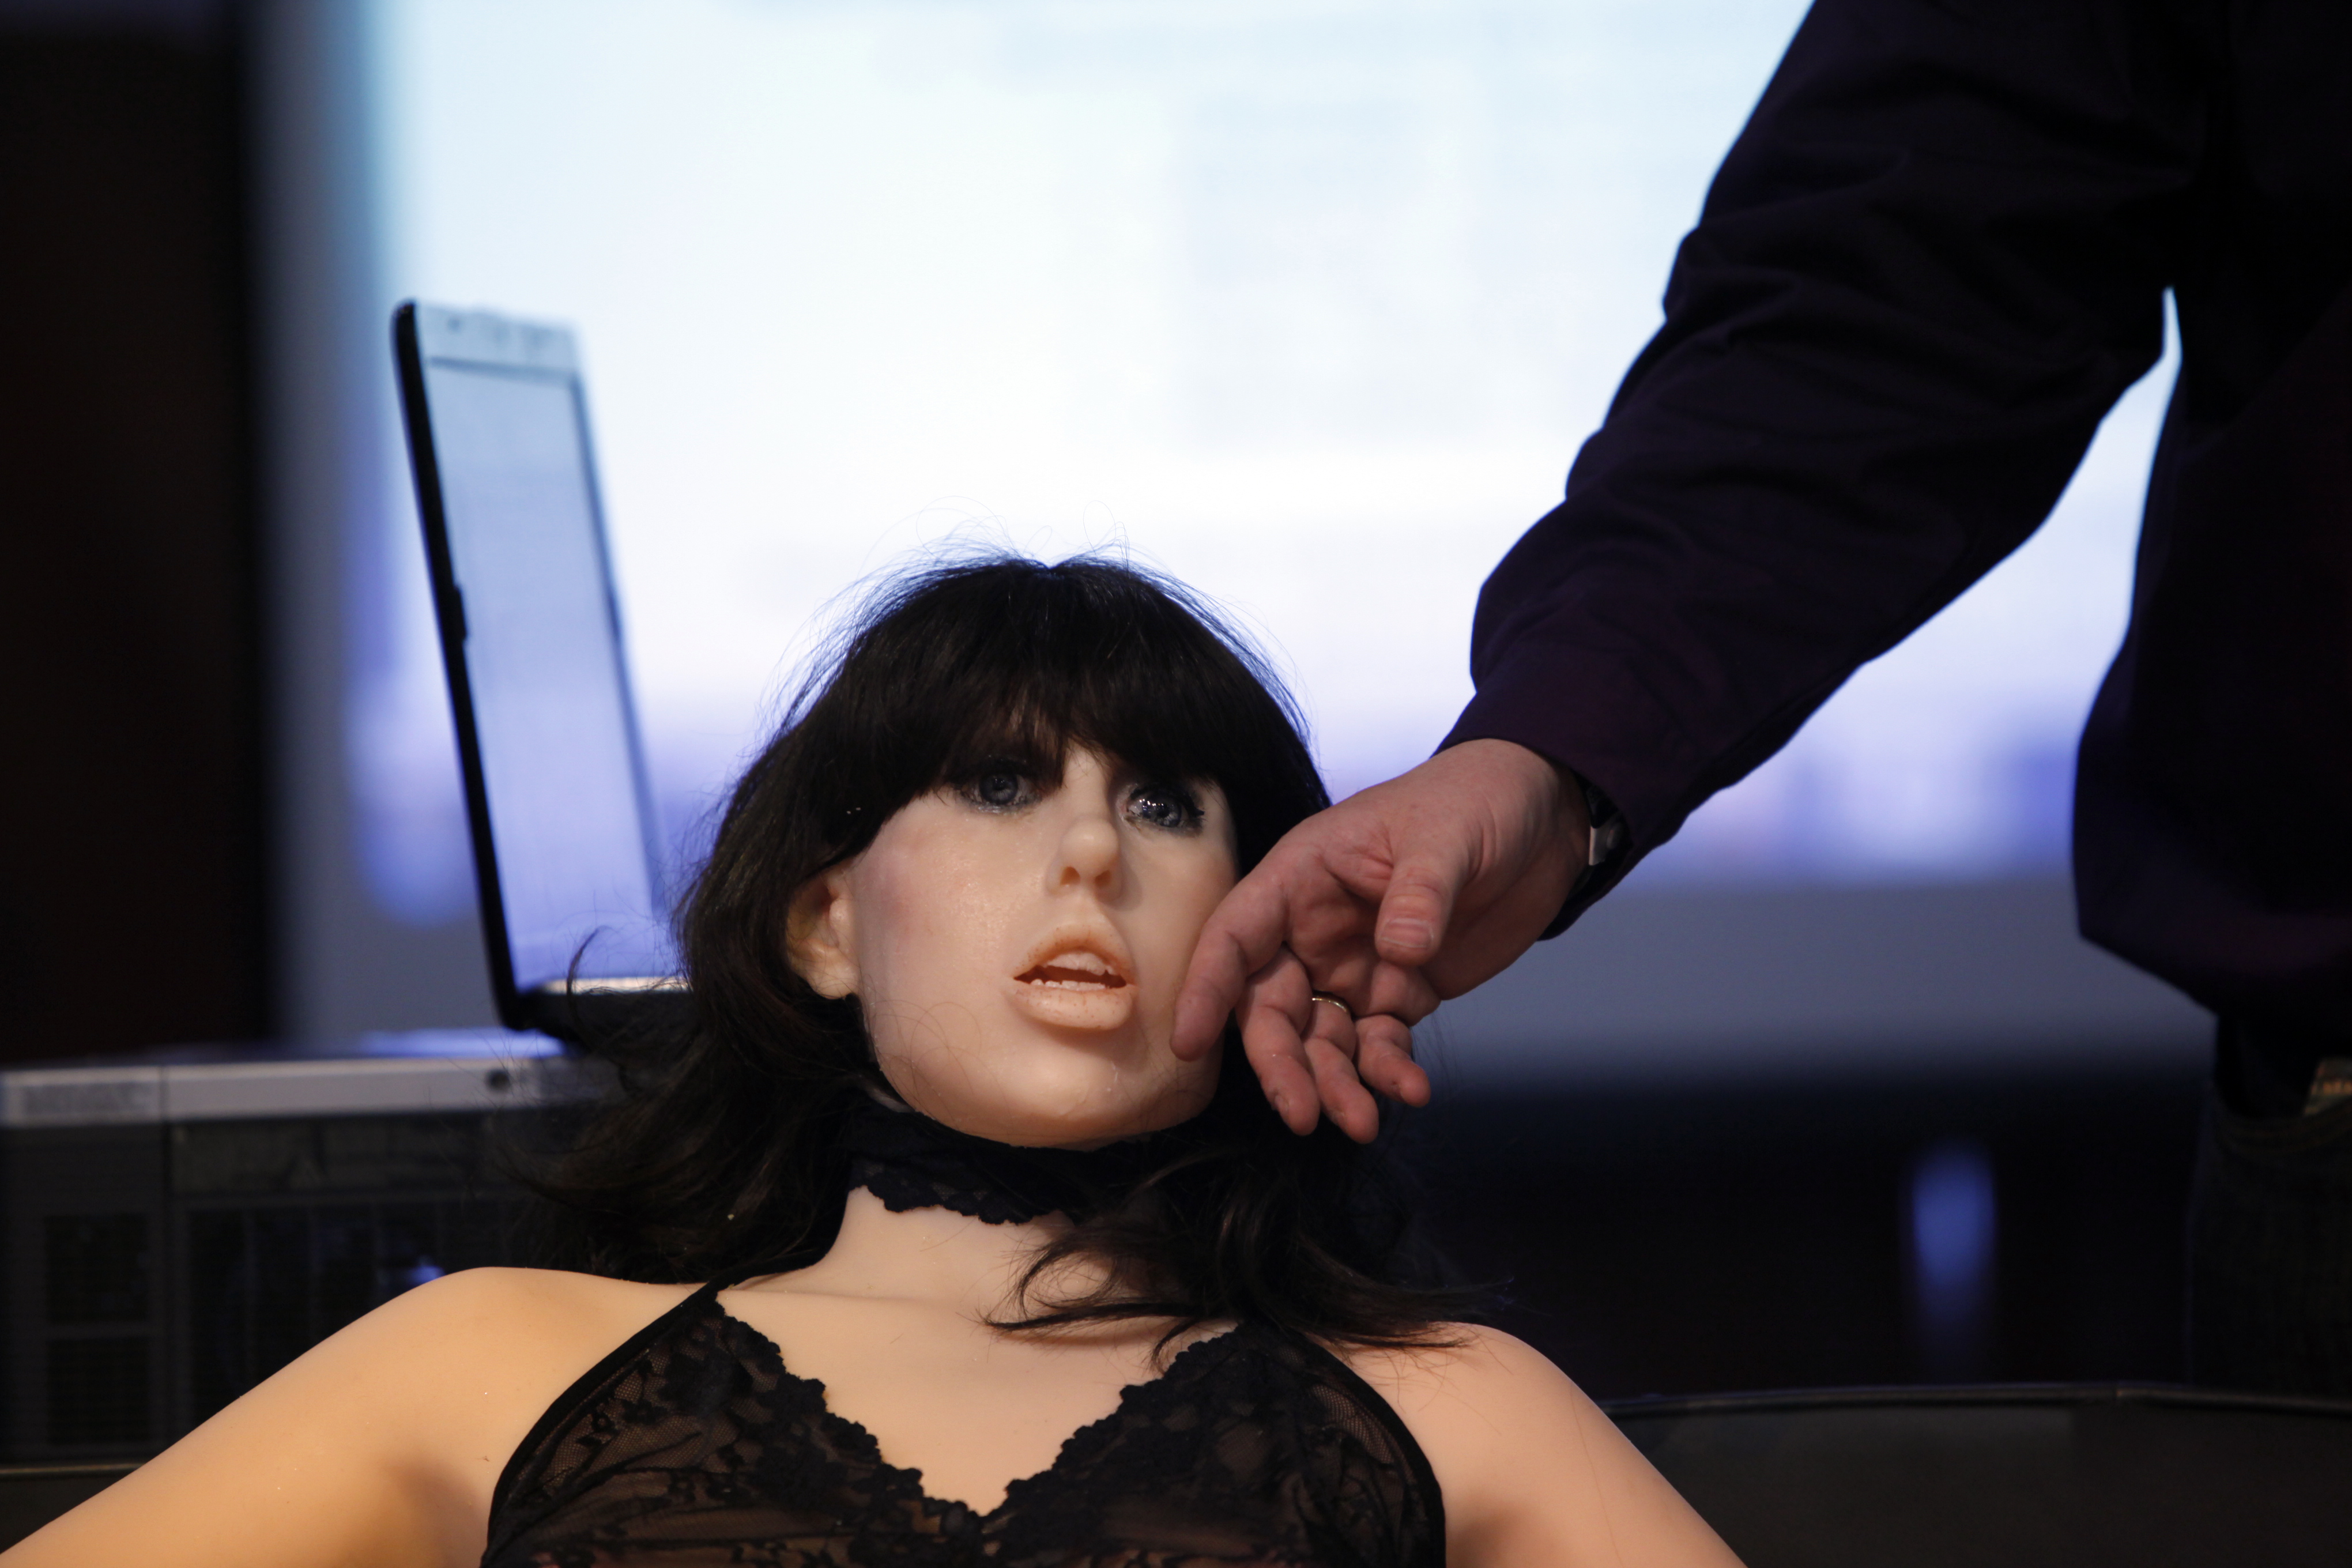 A life-size rubber doll named Roxxxy is on display during the Adult Entertainment Expo on Jan. 9, 2010 in Las Vegas.